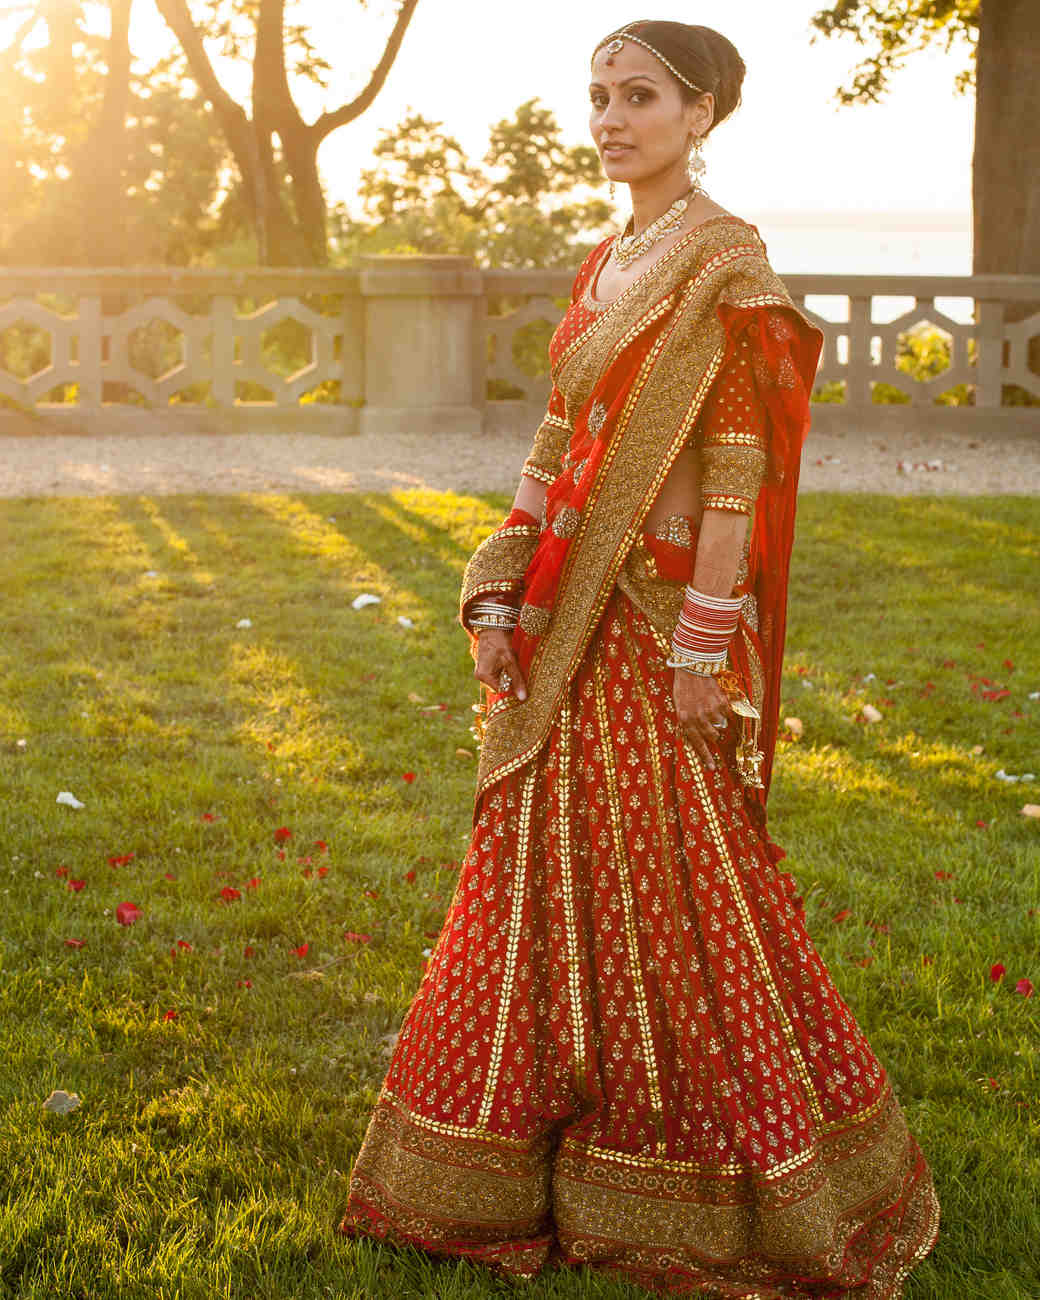 10 Common Indian Wedding Traditions Martha Stewart Weddings